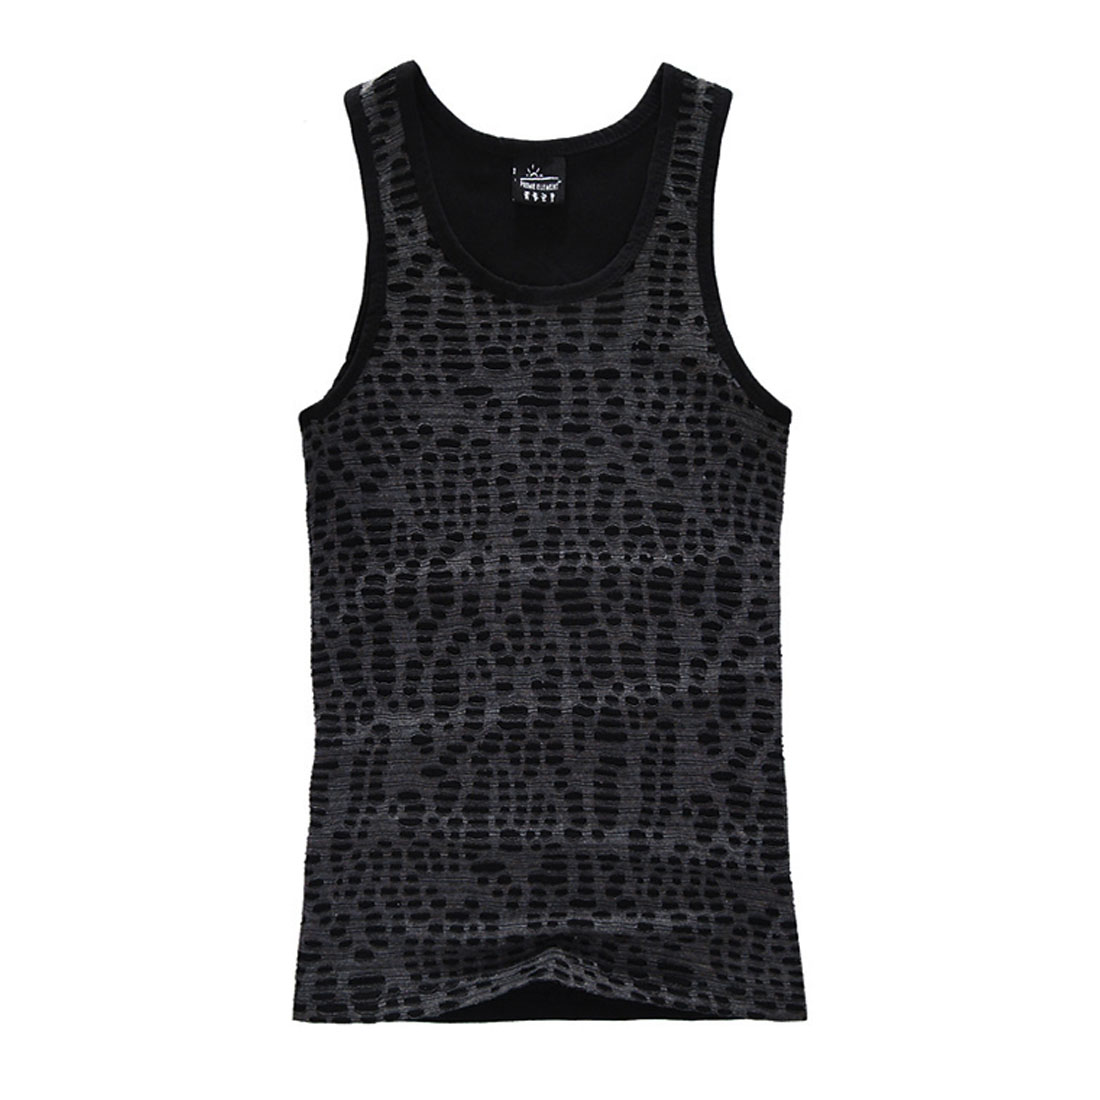 Men U Neck Semi Sheer Round Hem Form-fitting Black Tank Top T-Shirt S